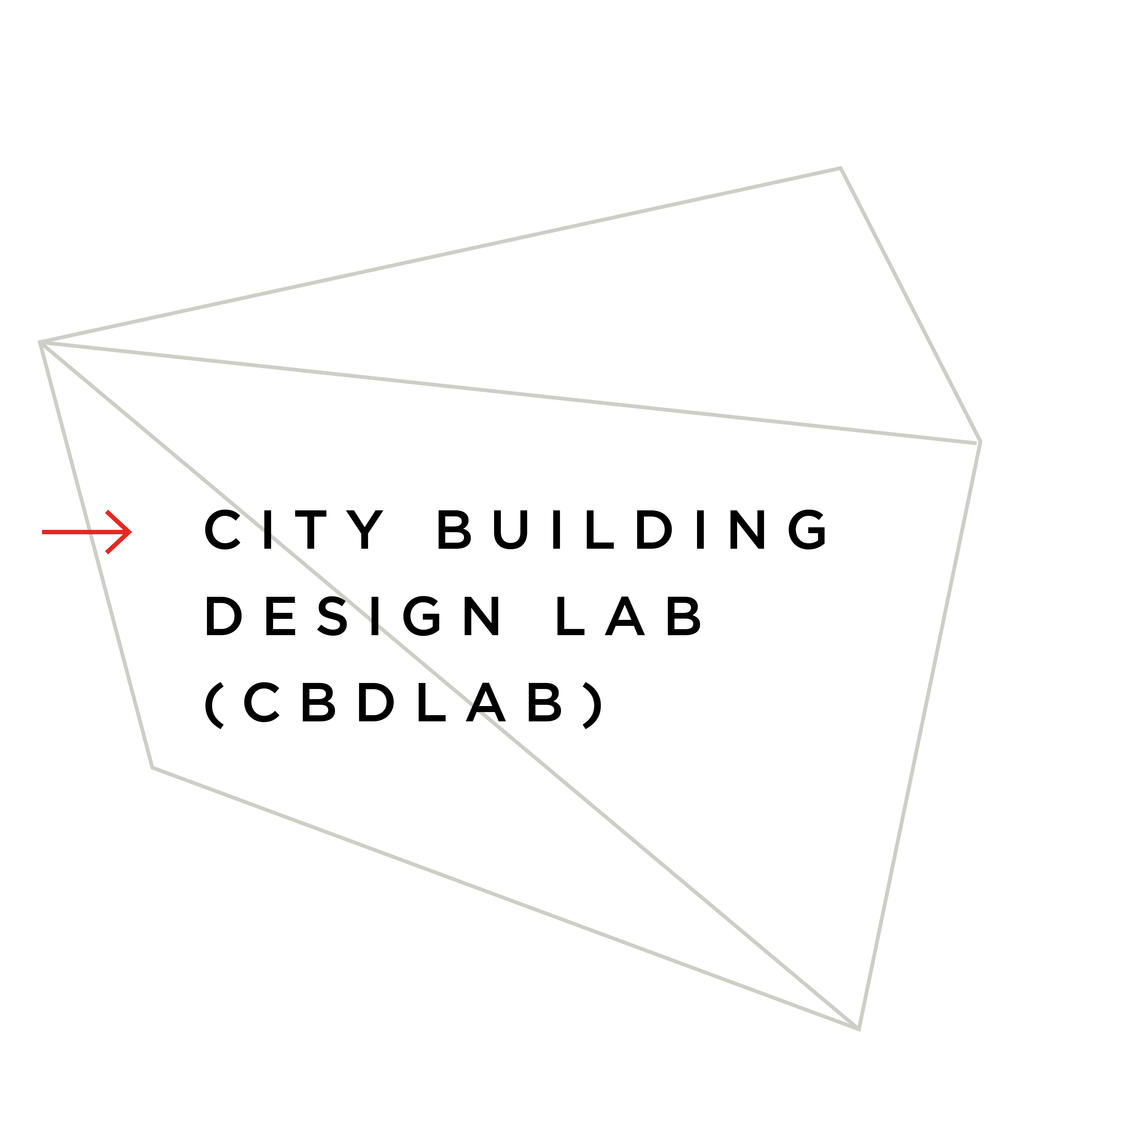 City Building Design Lab (CBDLab)